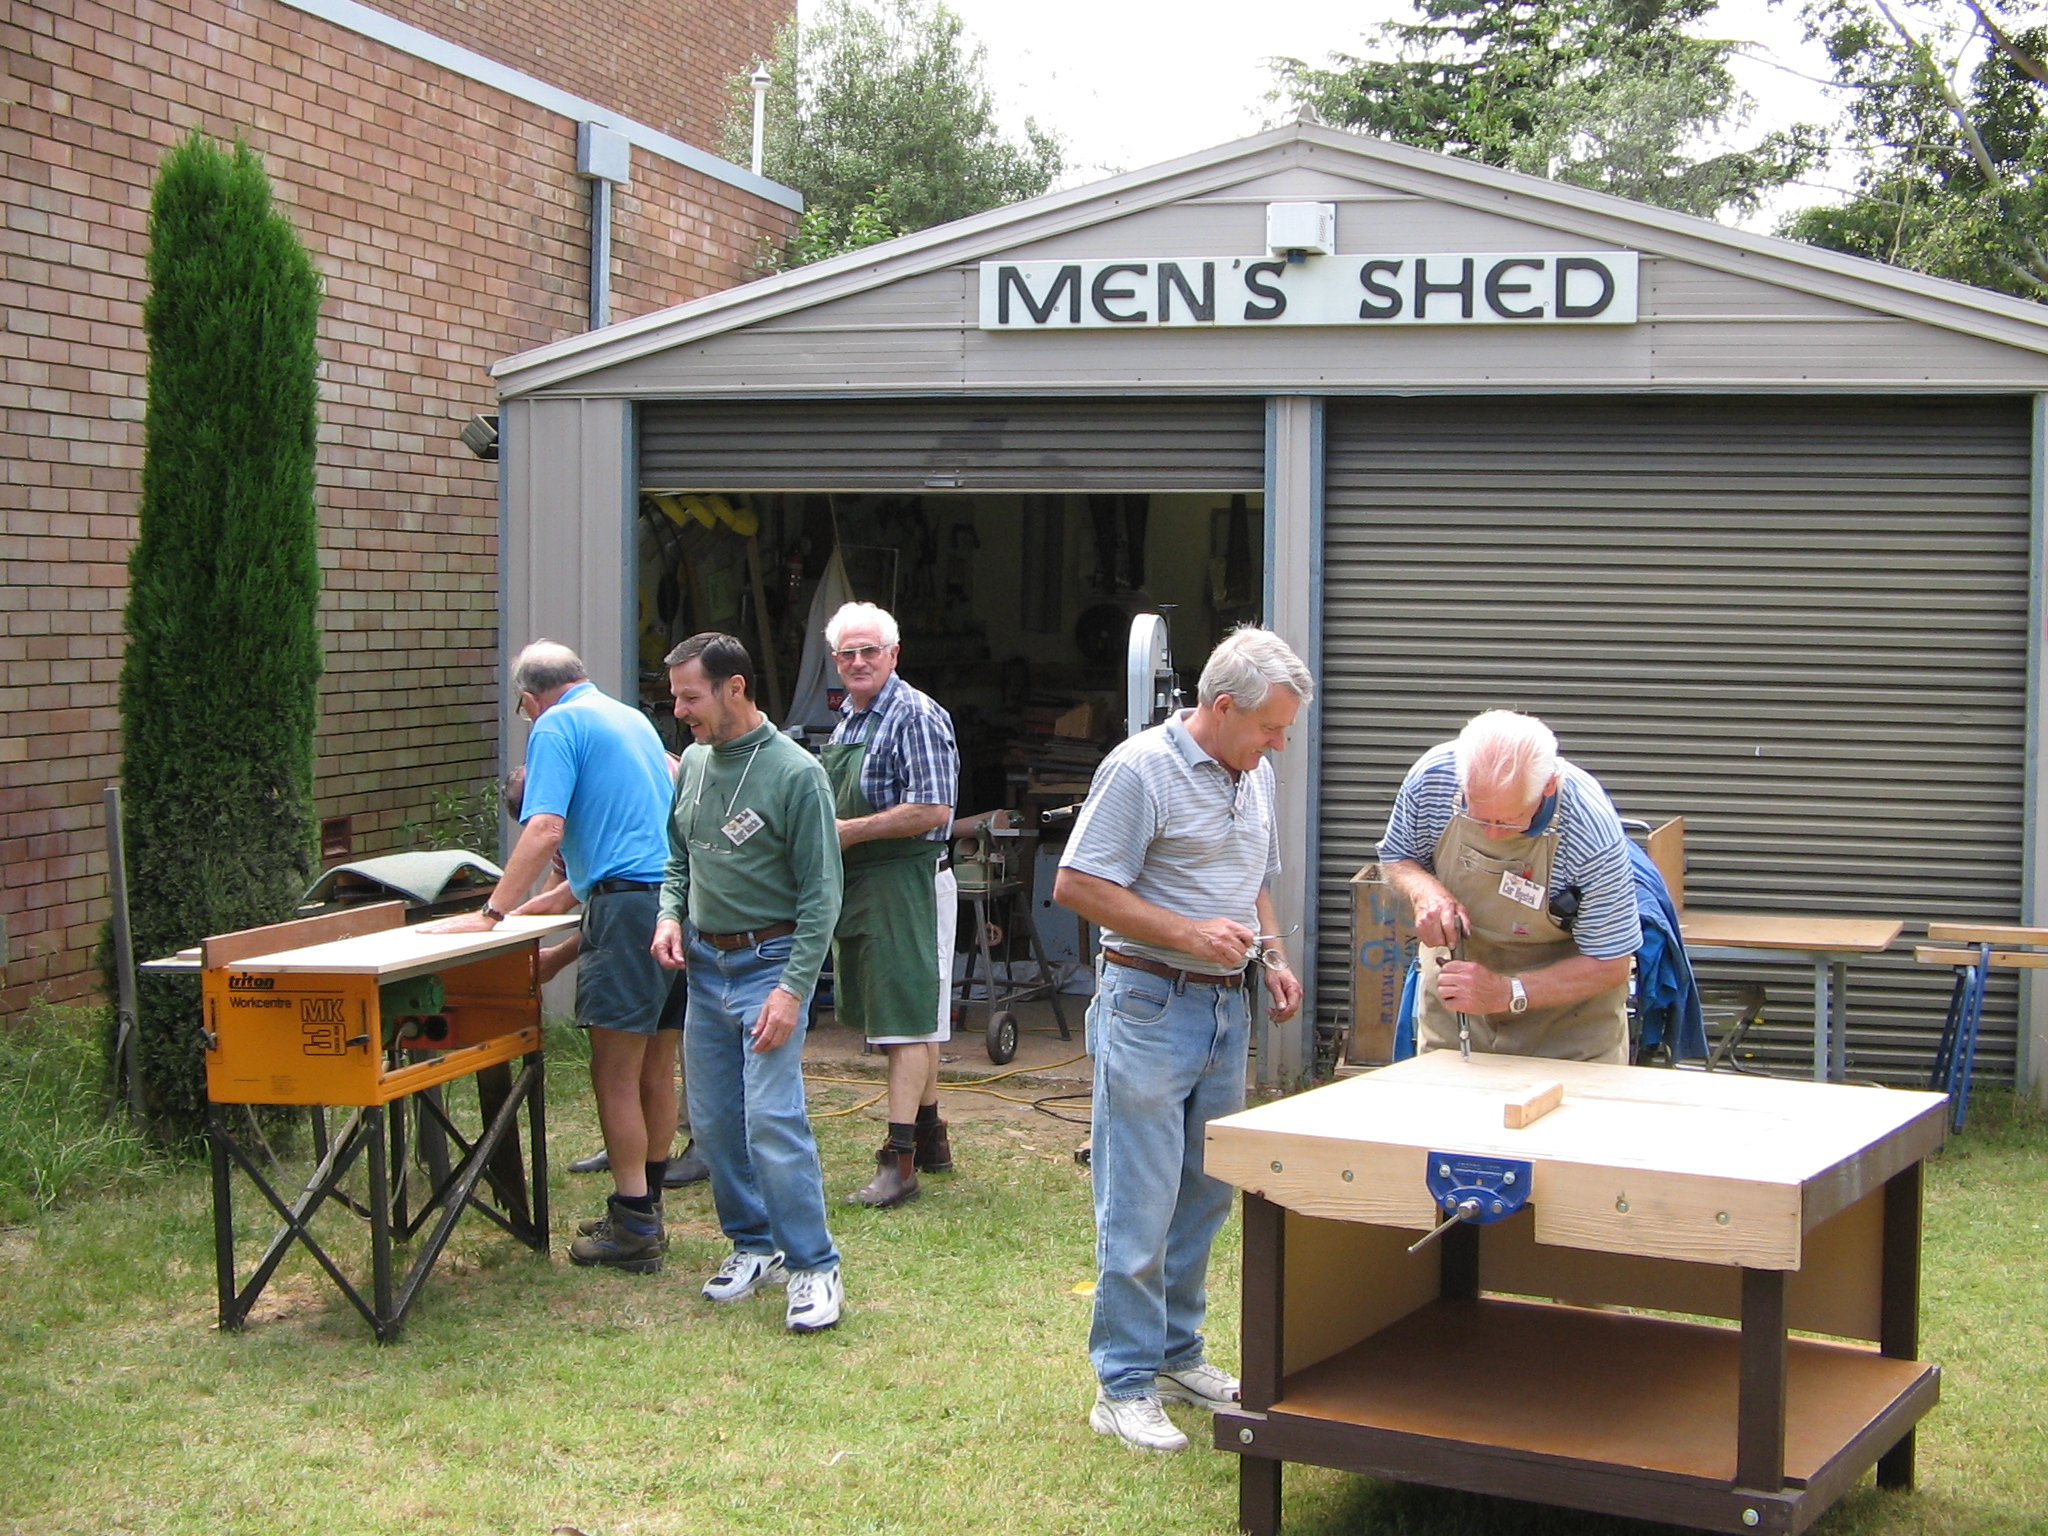 Men s sheds barry golding Australia home and garden tv show